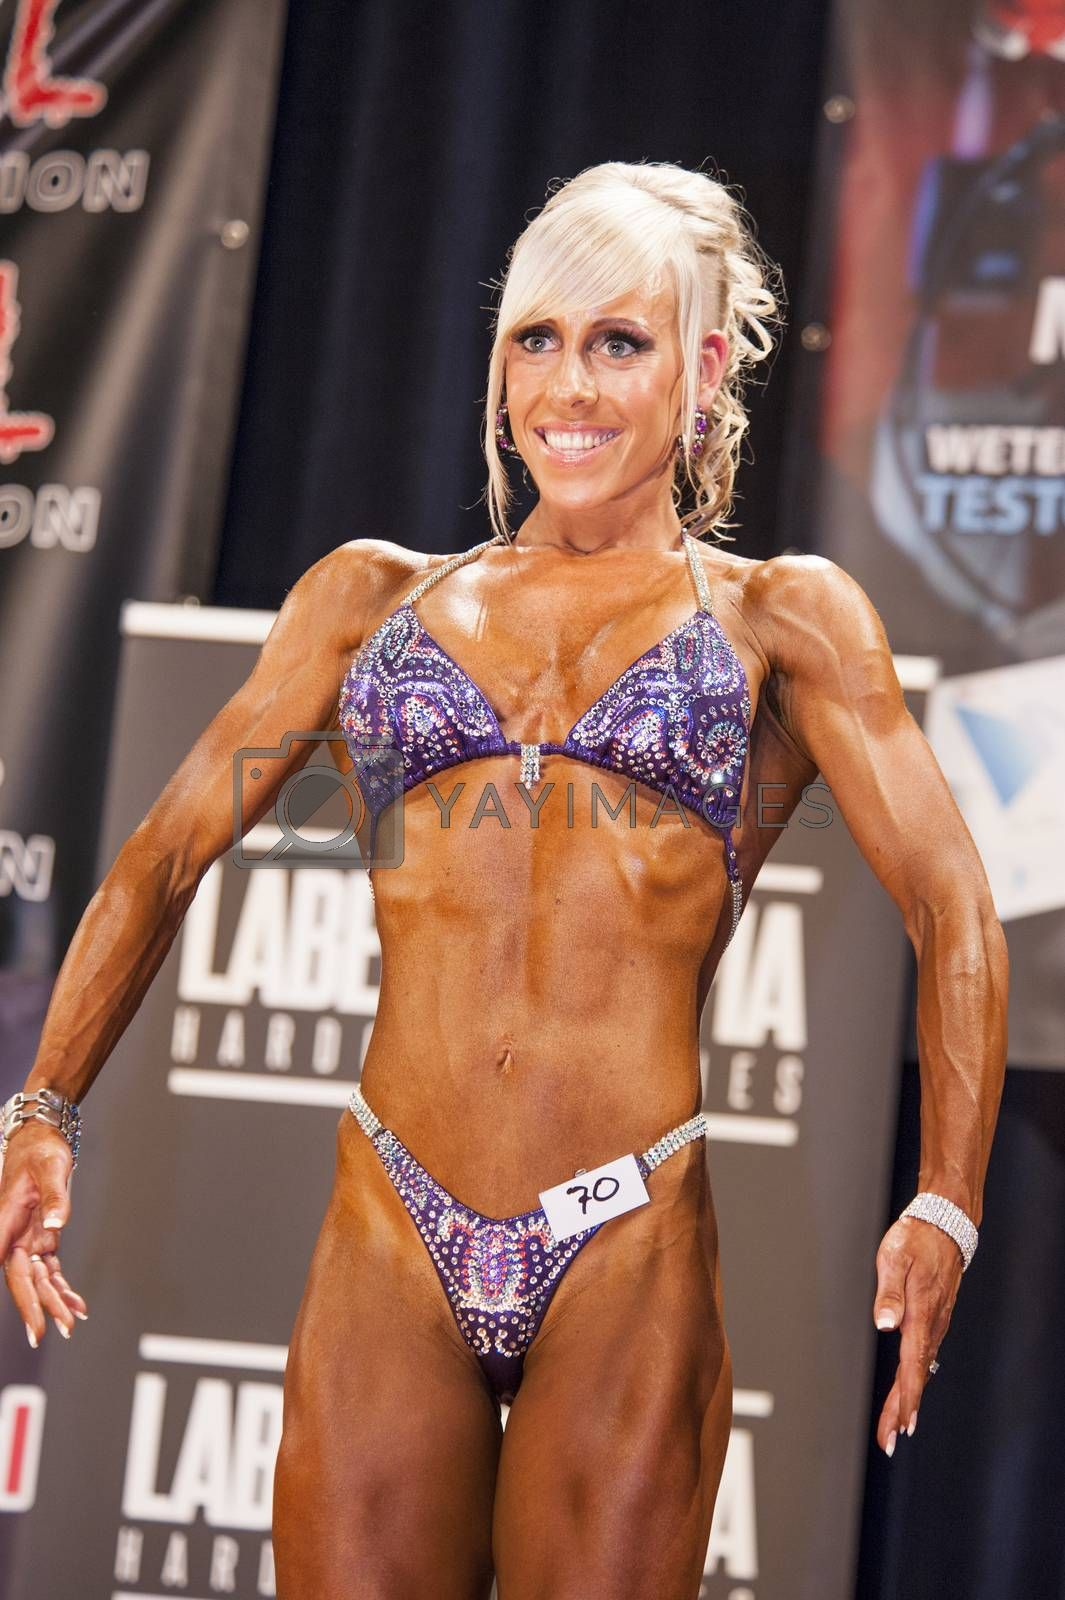 Female bodybuilder shows her best front pose on stage by yellowpaul